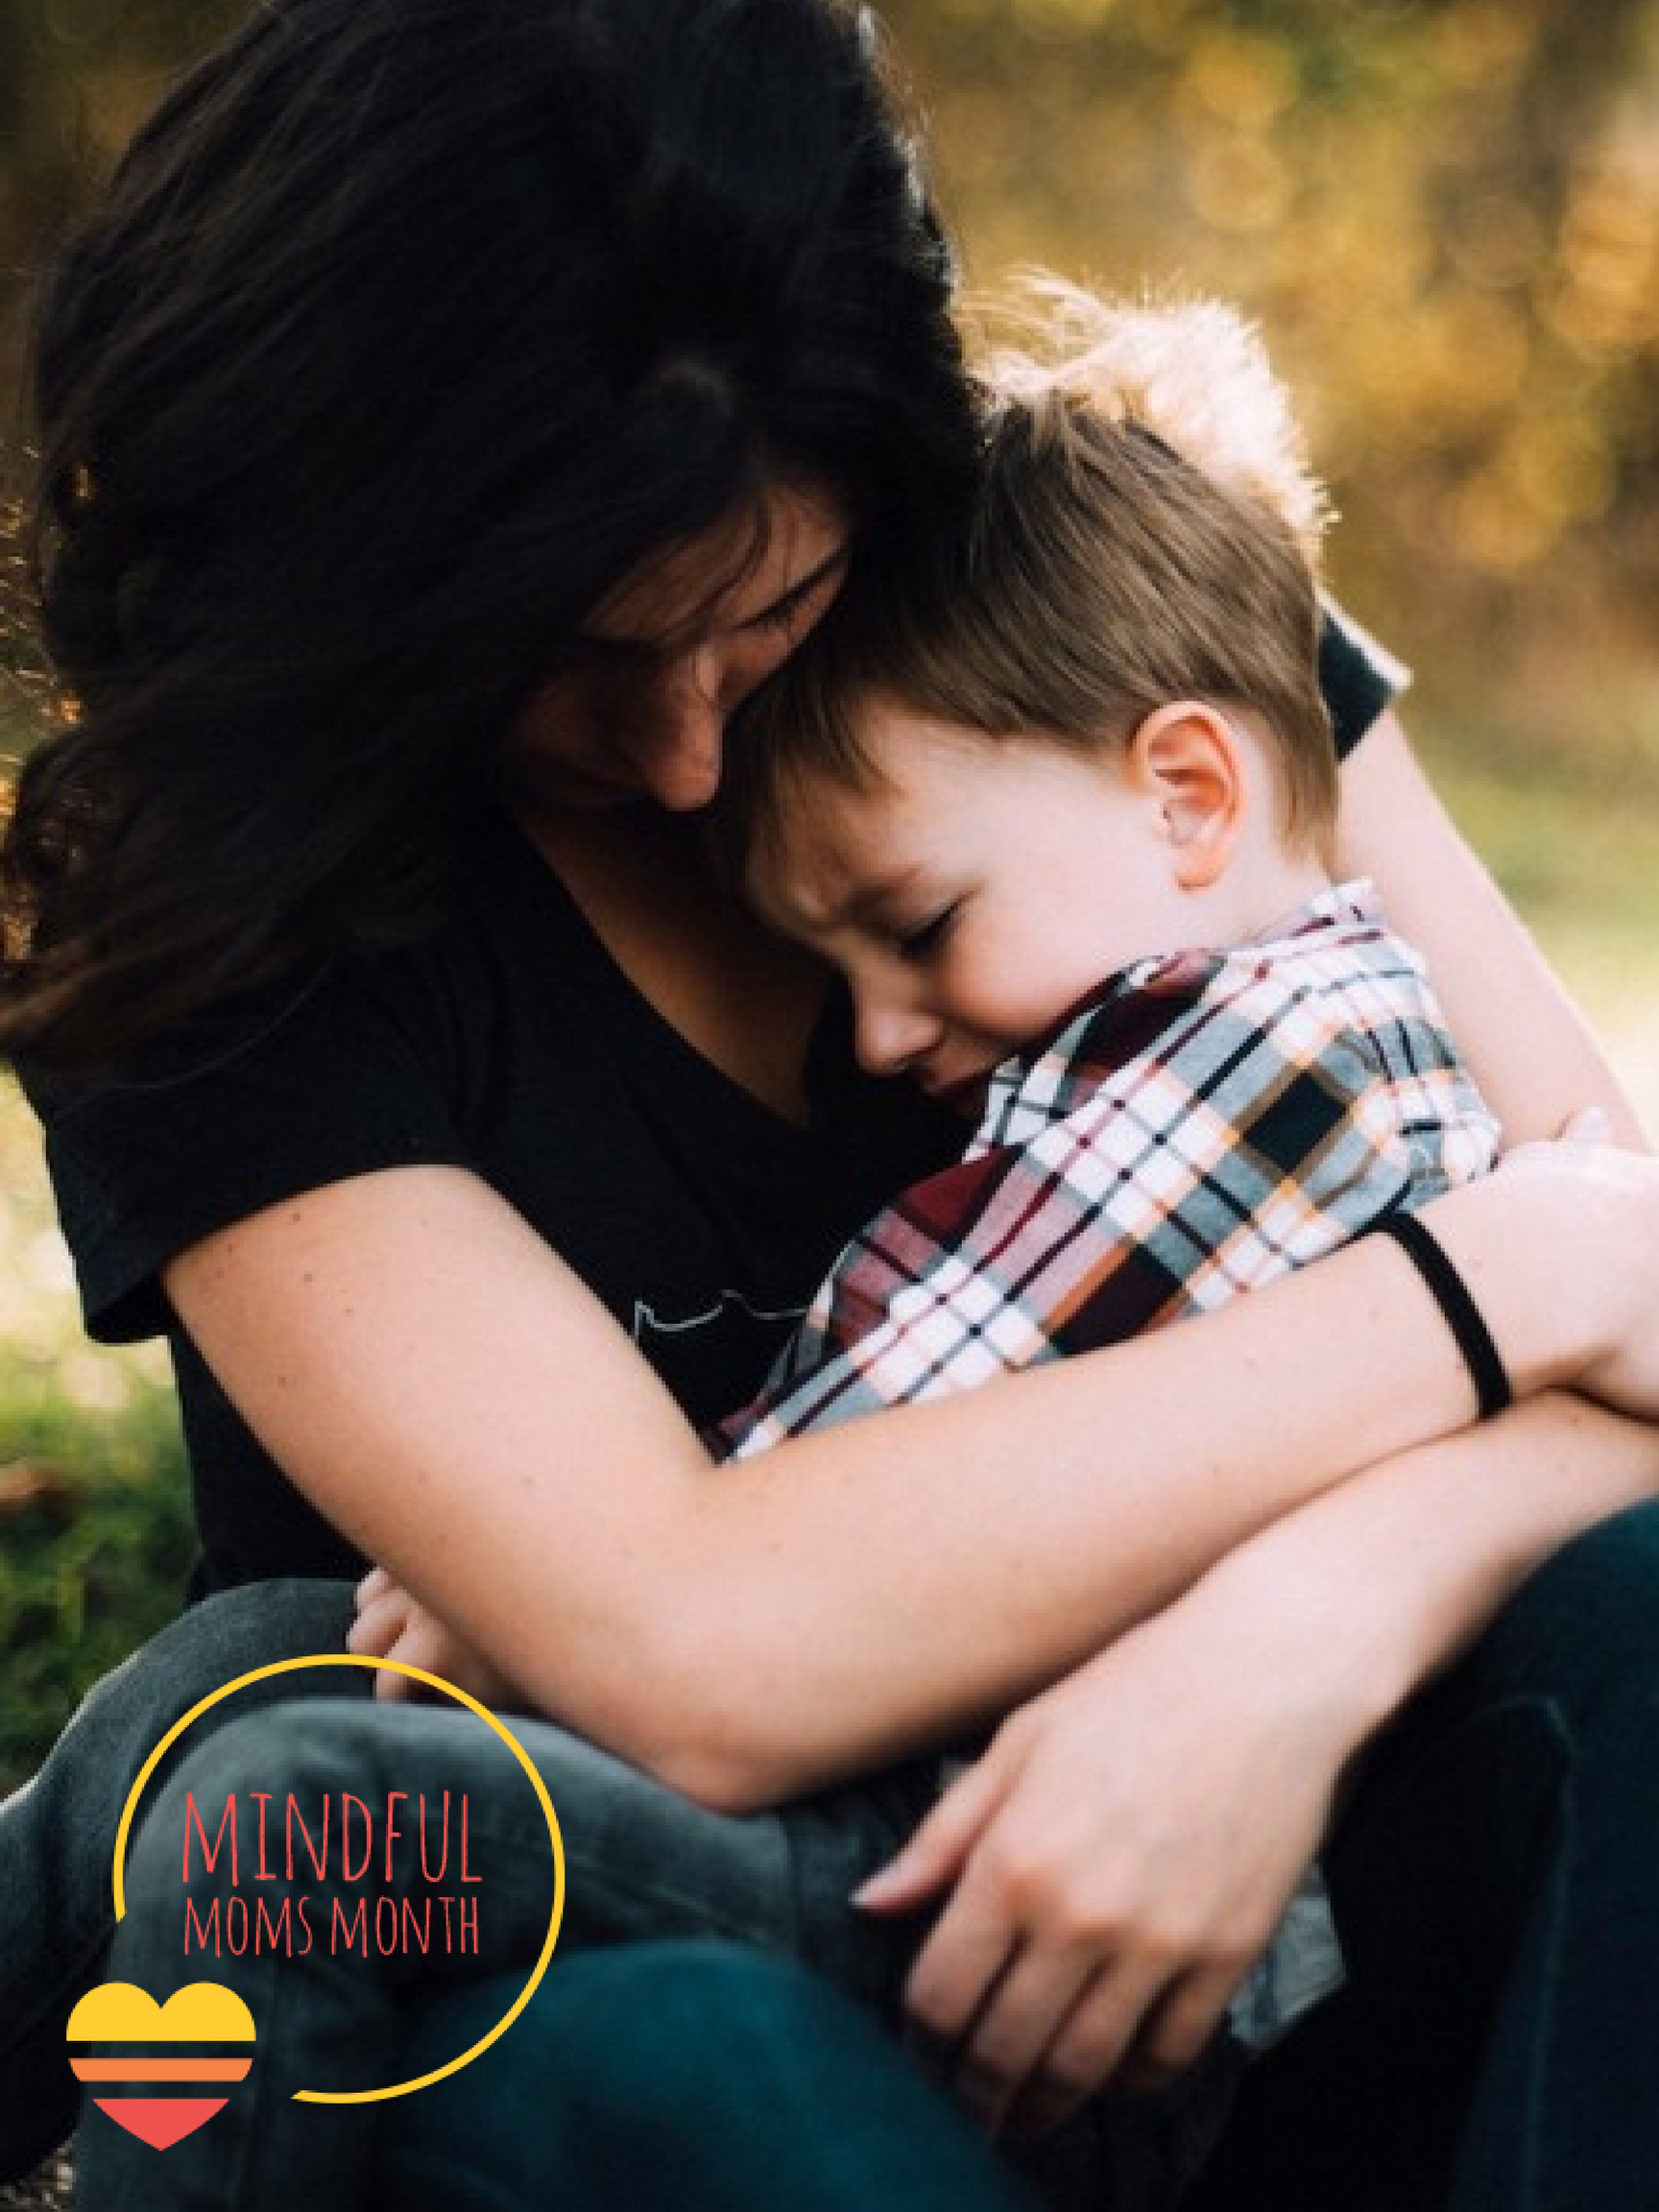 Maternal instinct: why we love our child